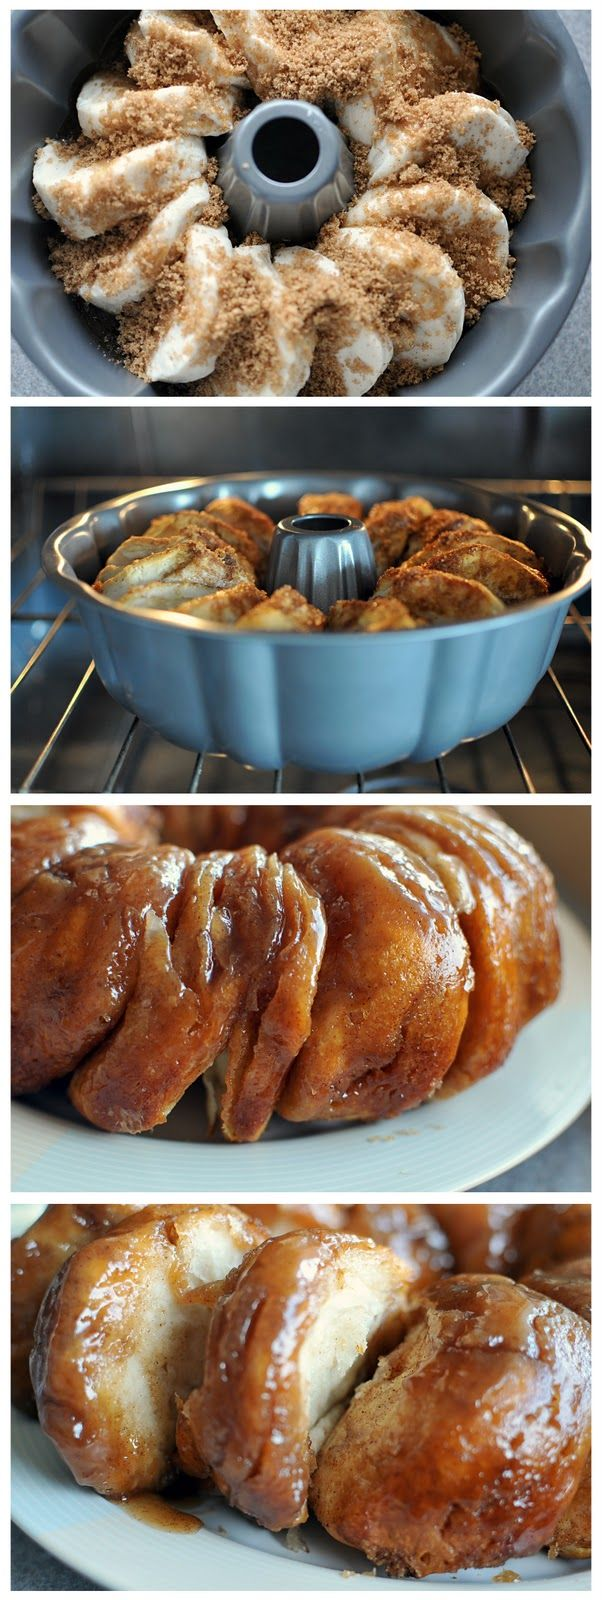 sticky bun breakfast ring using buttermilk biscuits: Buttermilk Biscuits, Brown Sugar, Breakfast Rings, Pull Apartment, Biscuits Cinnamon Rolls, Monkey Breads, Christmas Mornings, Sticky Buns, Buns Breakfast